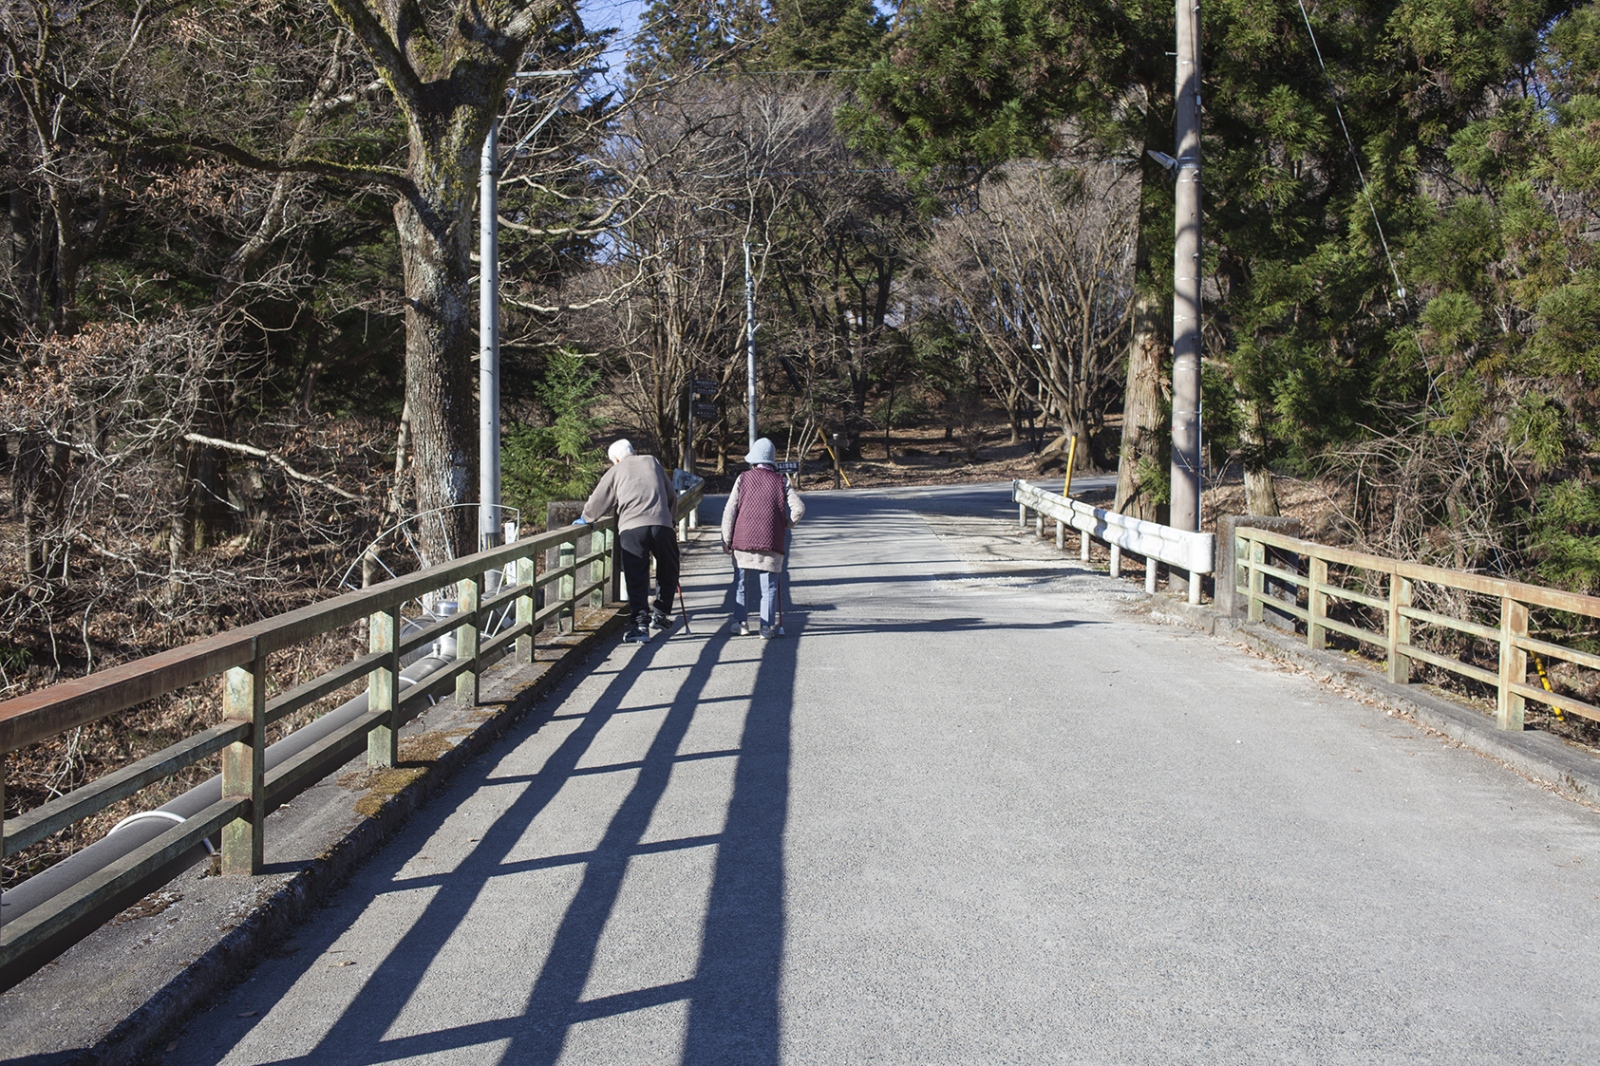 Elderly couple walking, Japan 2015.